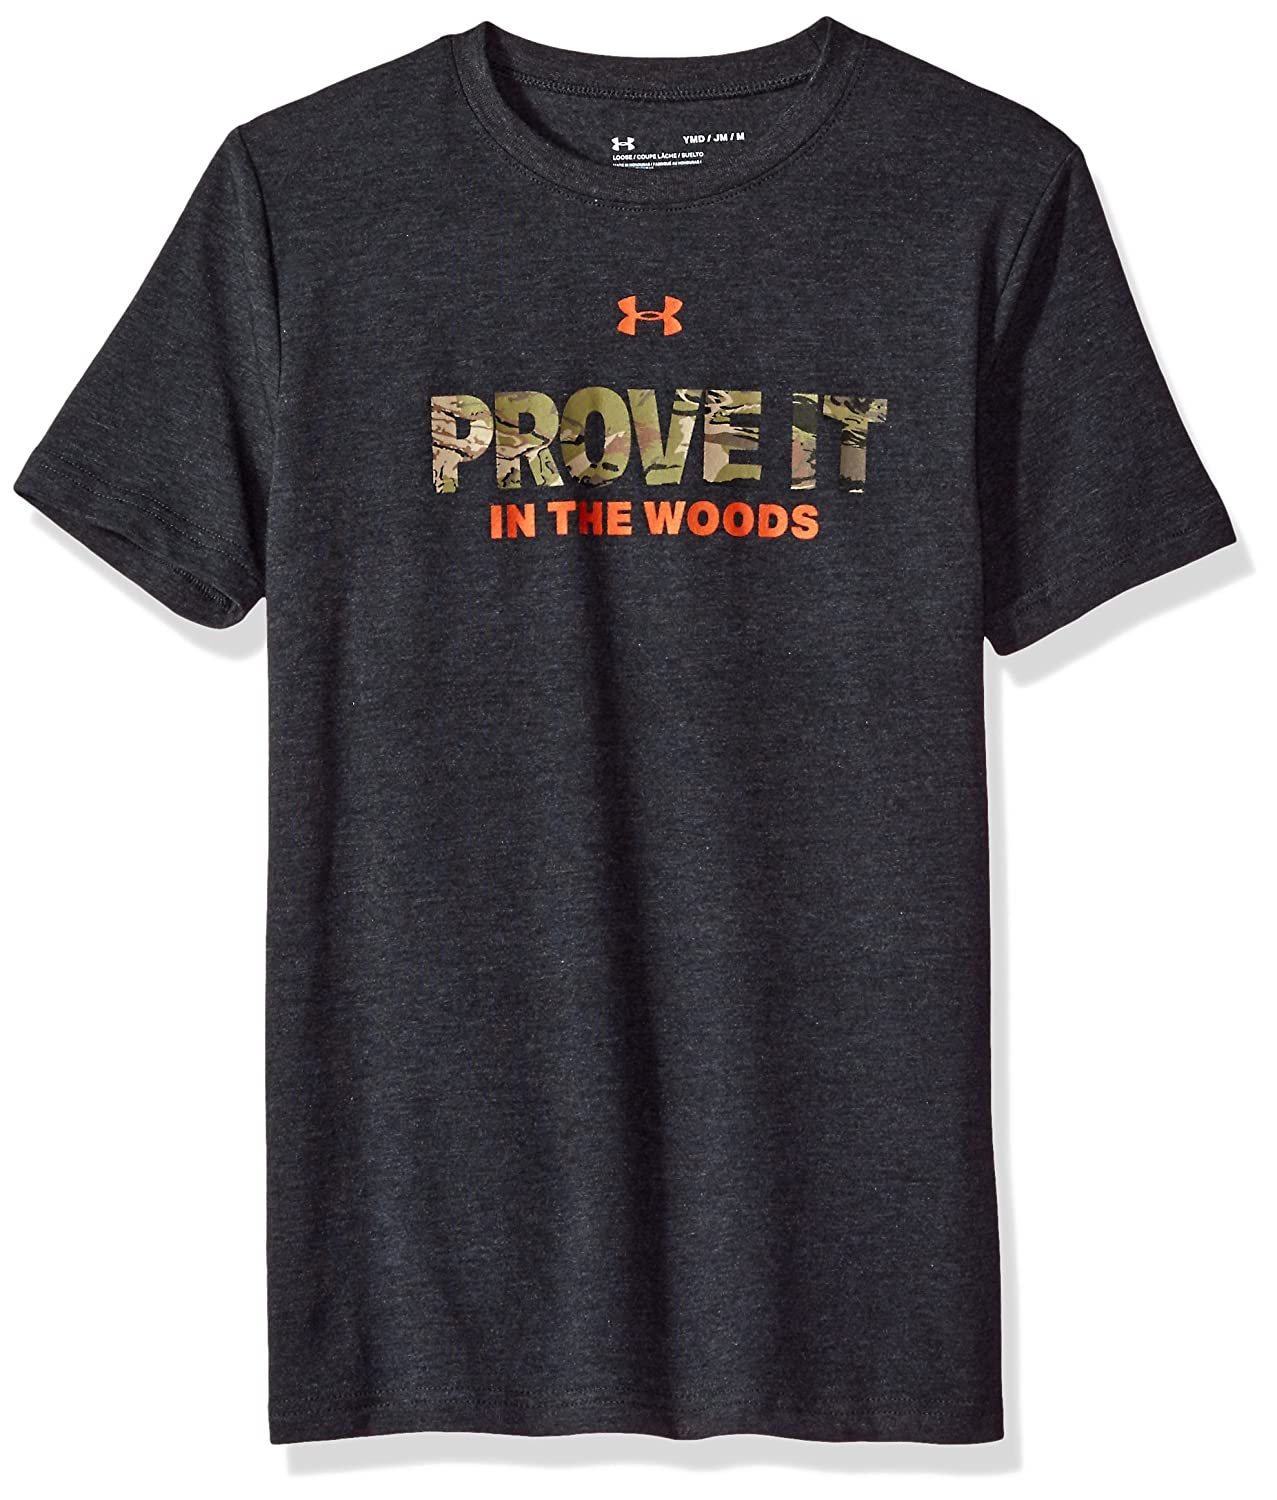 Under Armour Boys Prove it in the Woods T-Shirt